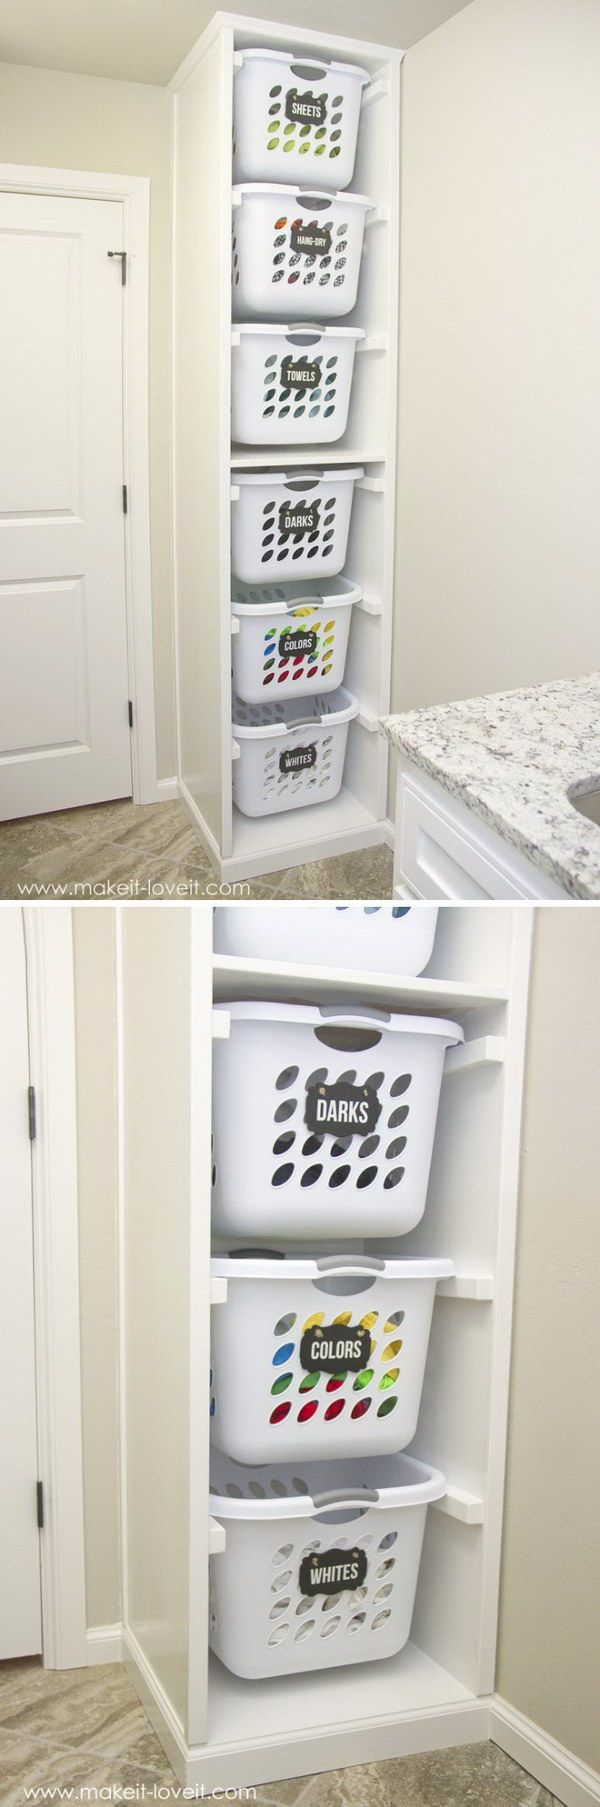 Top 25+ best Laundry rooms ideas on Pinterest | Laundry, Small ...